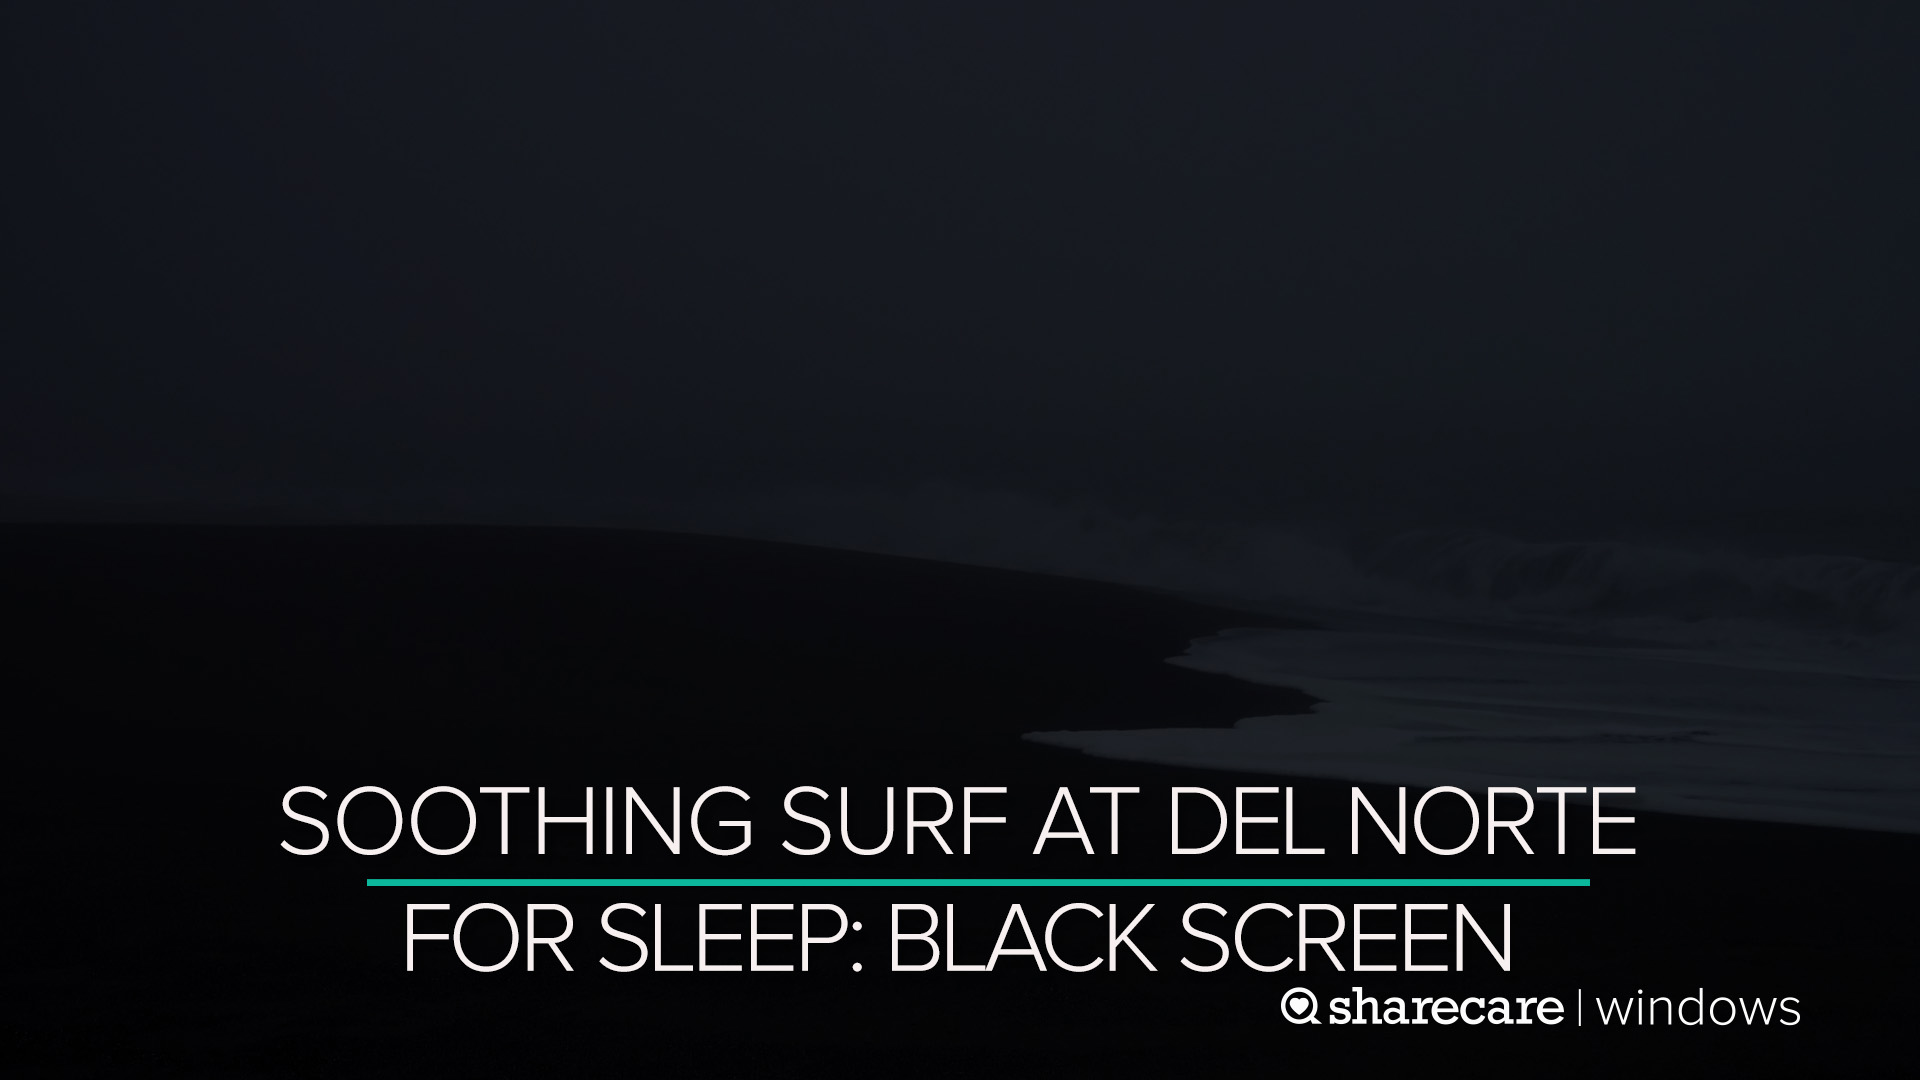 Watch Black Screen Ocean Waves For Sleep 9 Hours Prime Video